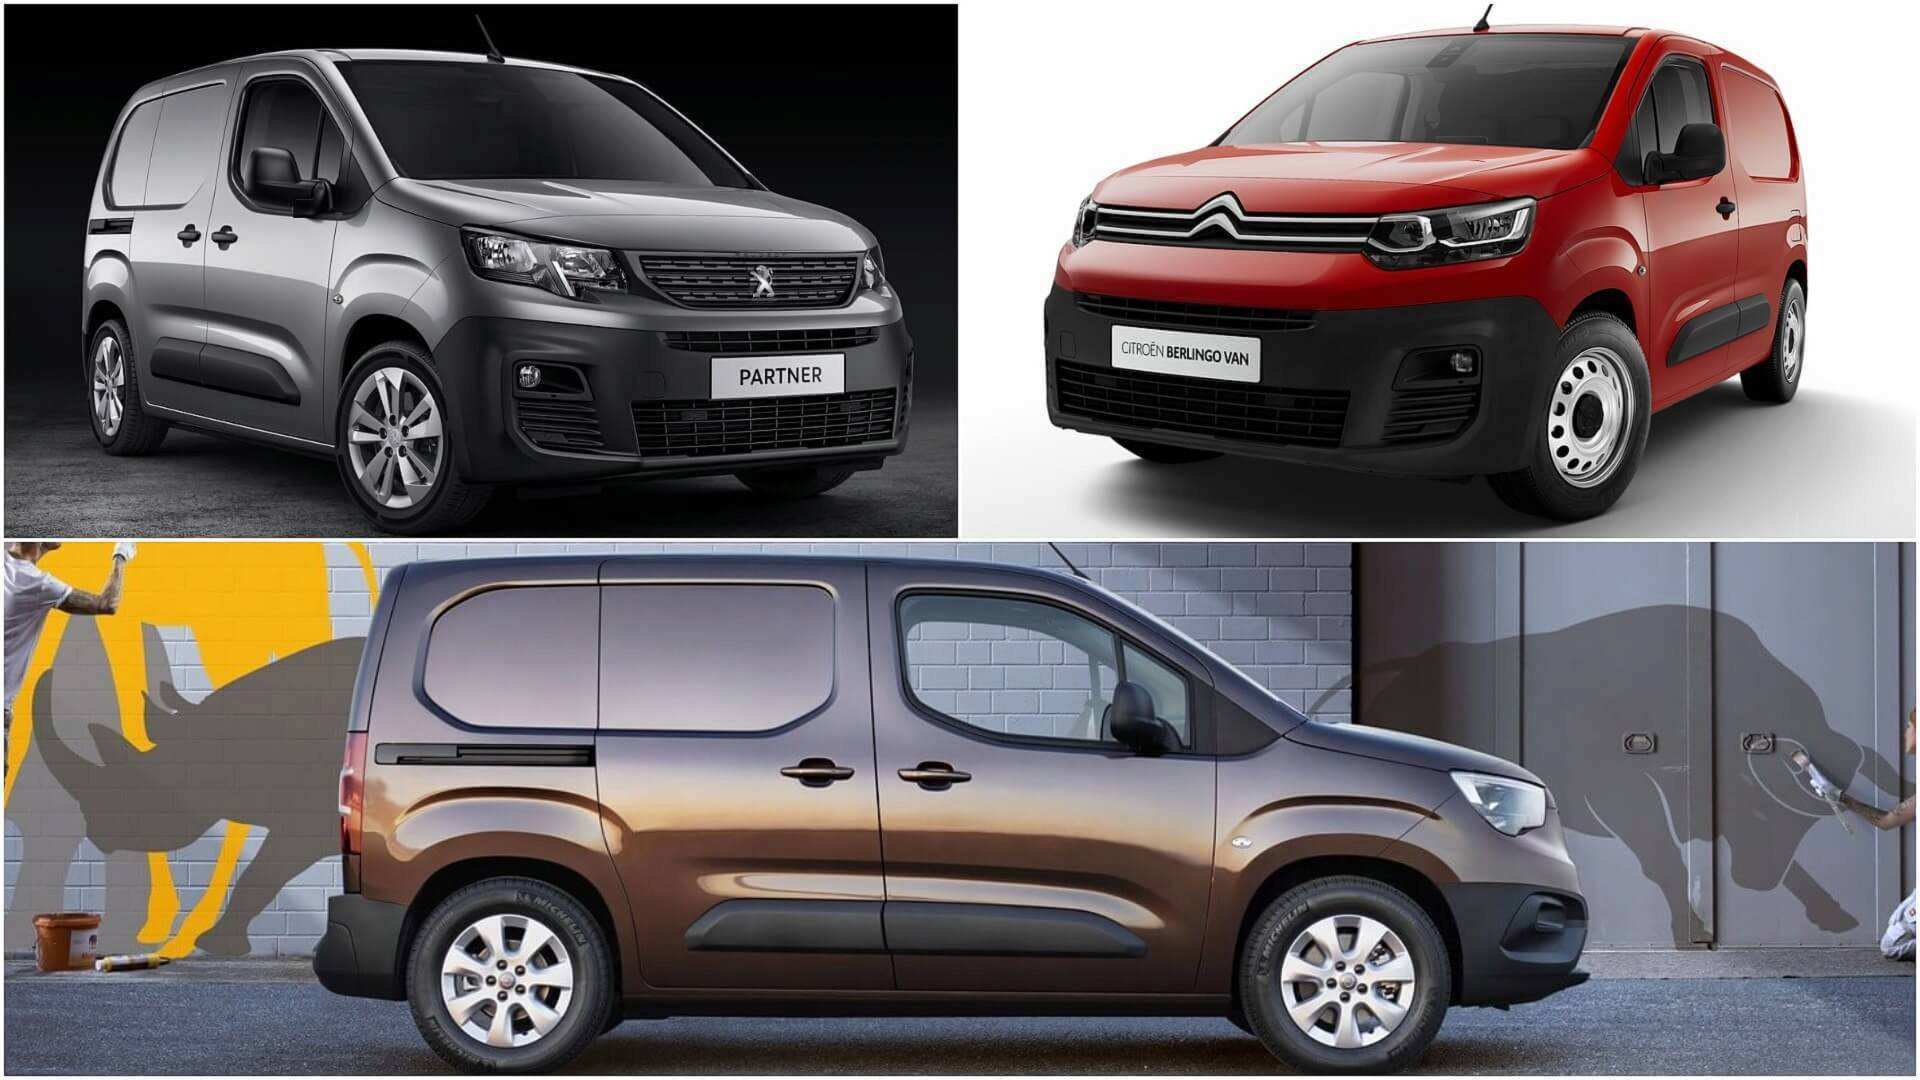 63 All New 2019 Citroen Berlingo Reviews for 2019 Citroen Berlingo